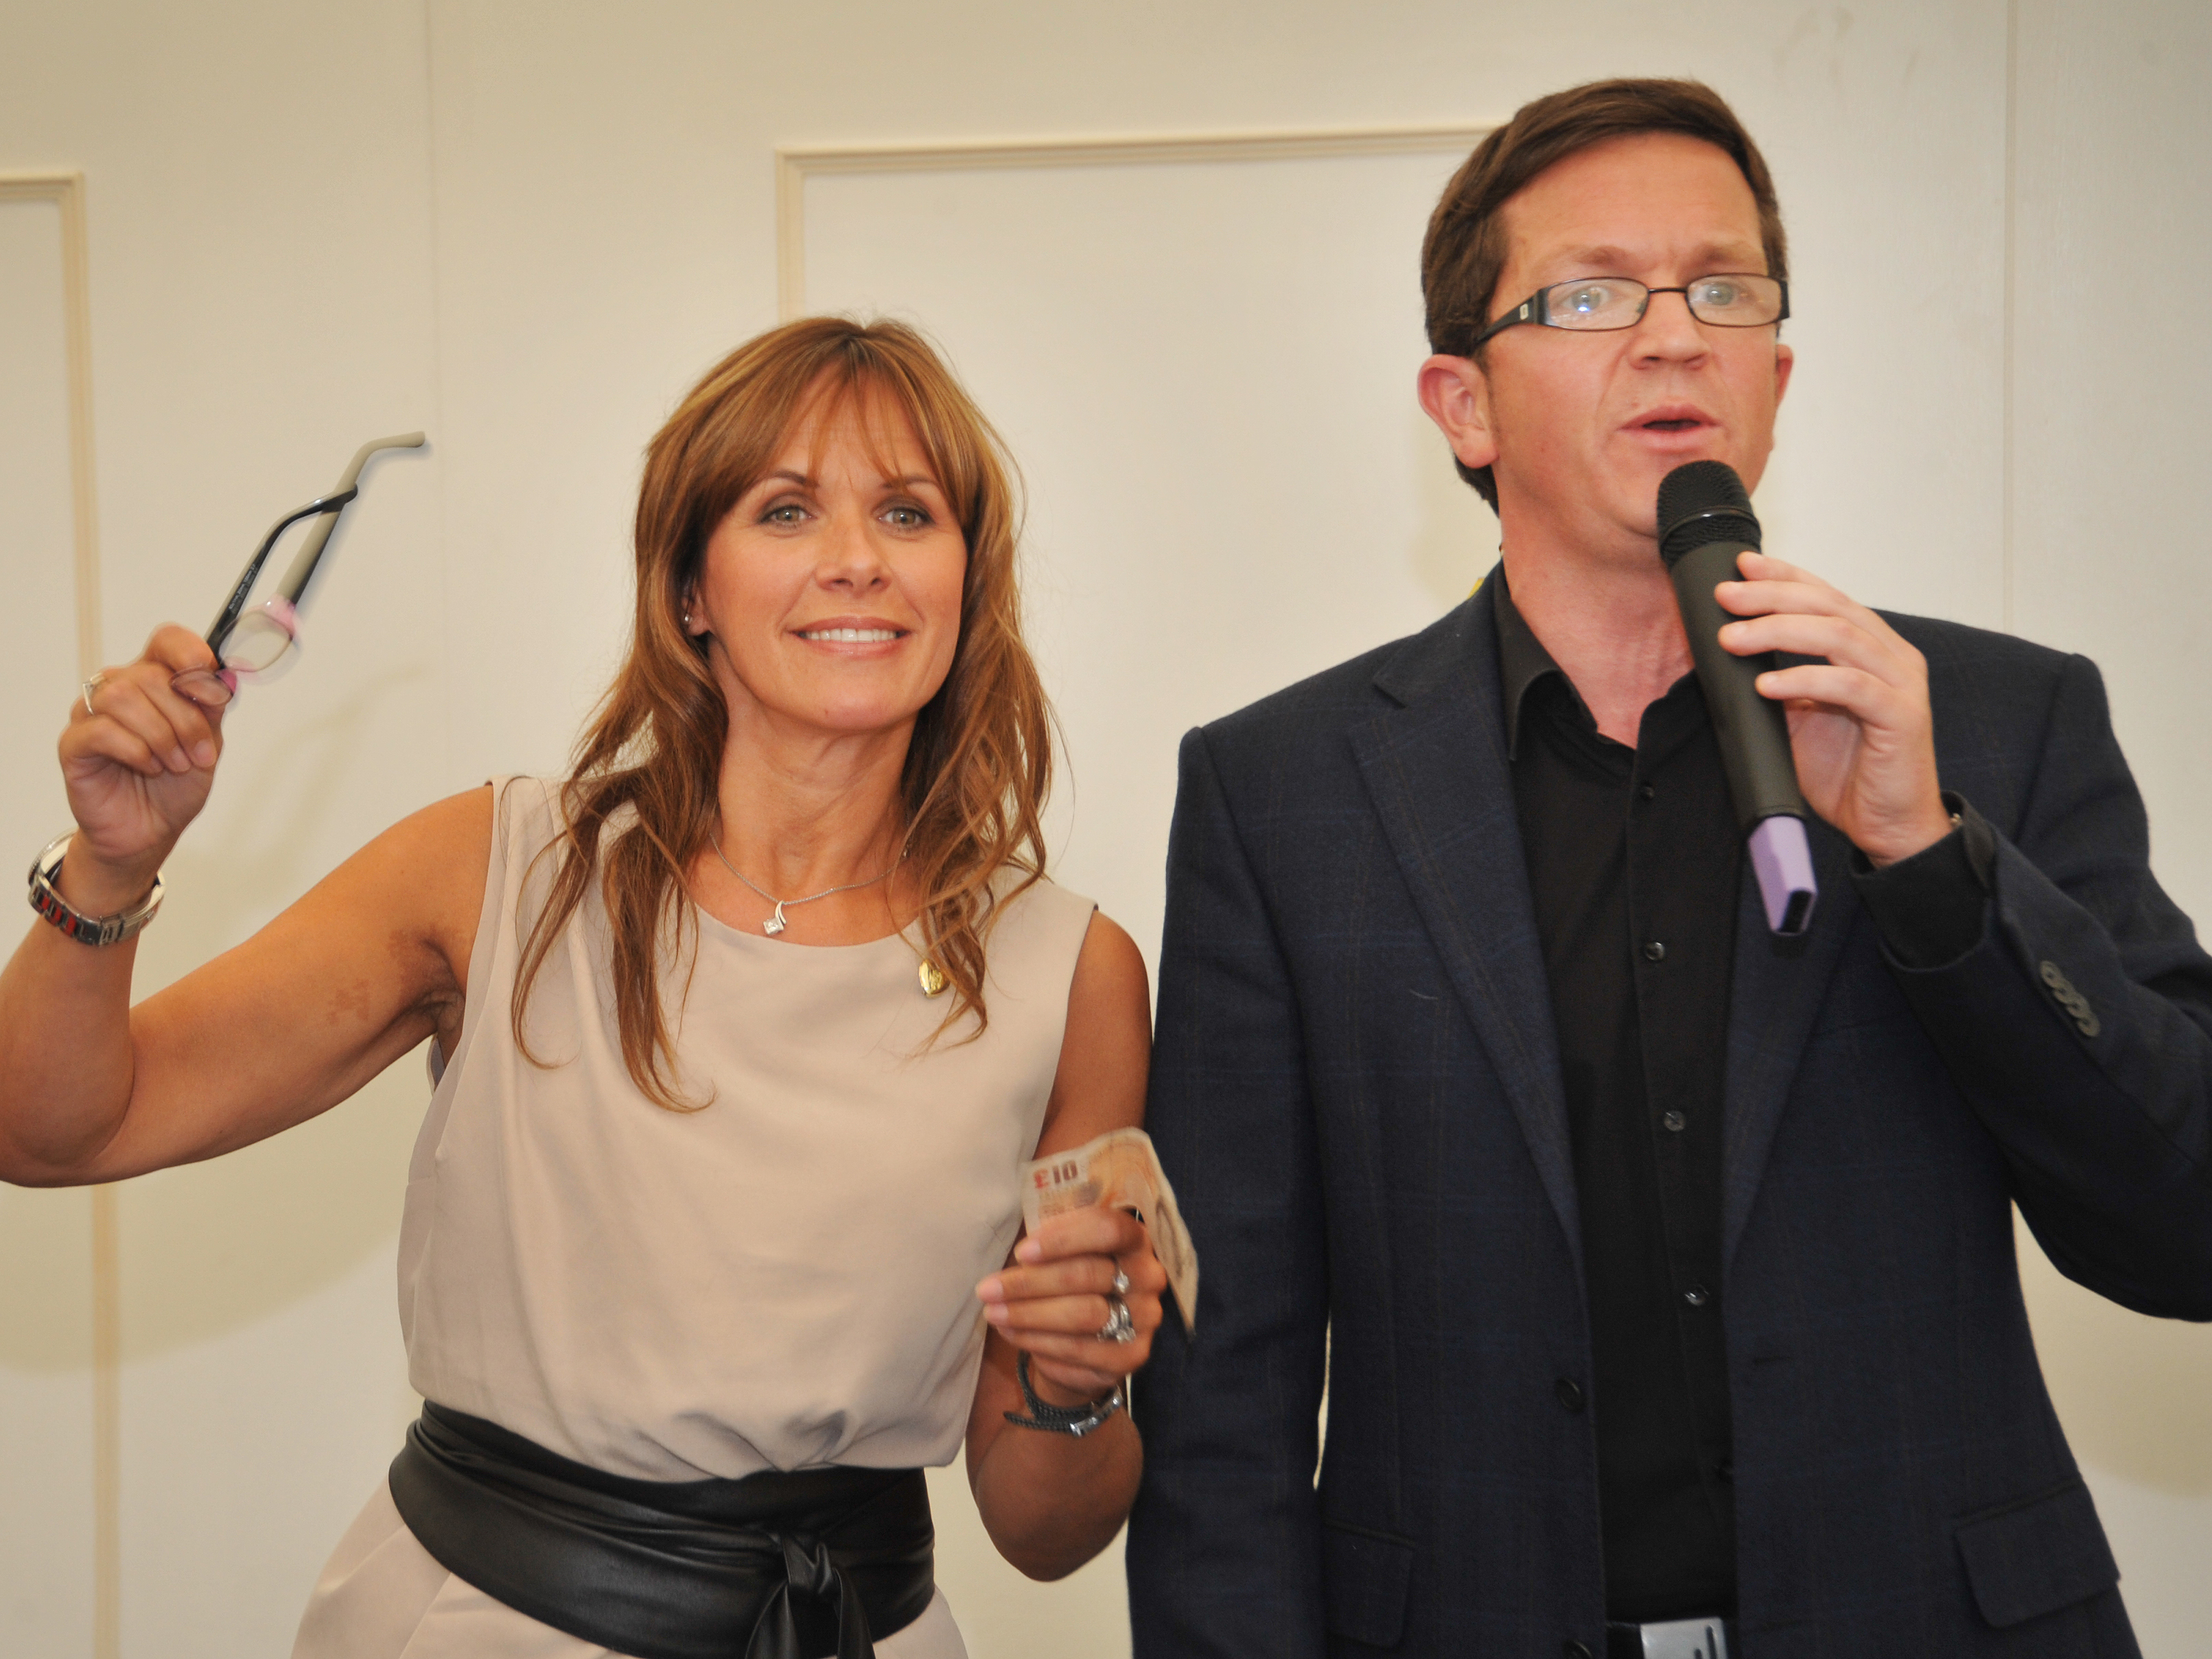 Working with Carol Smillie